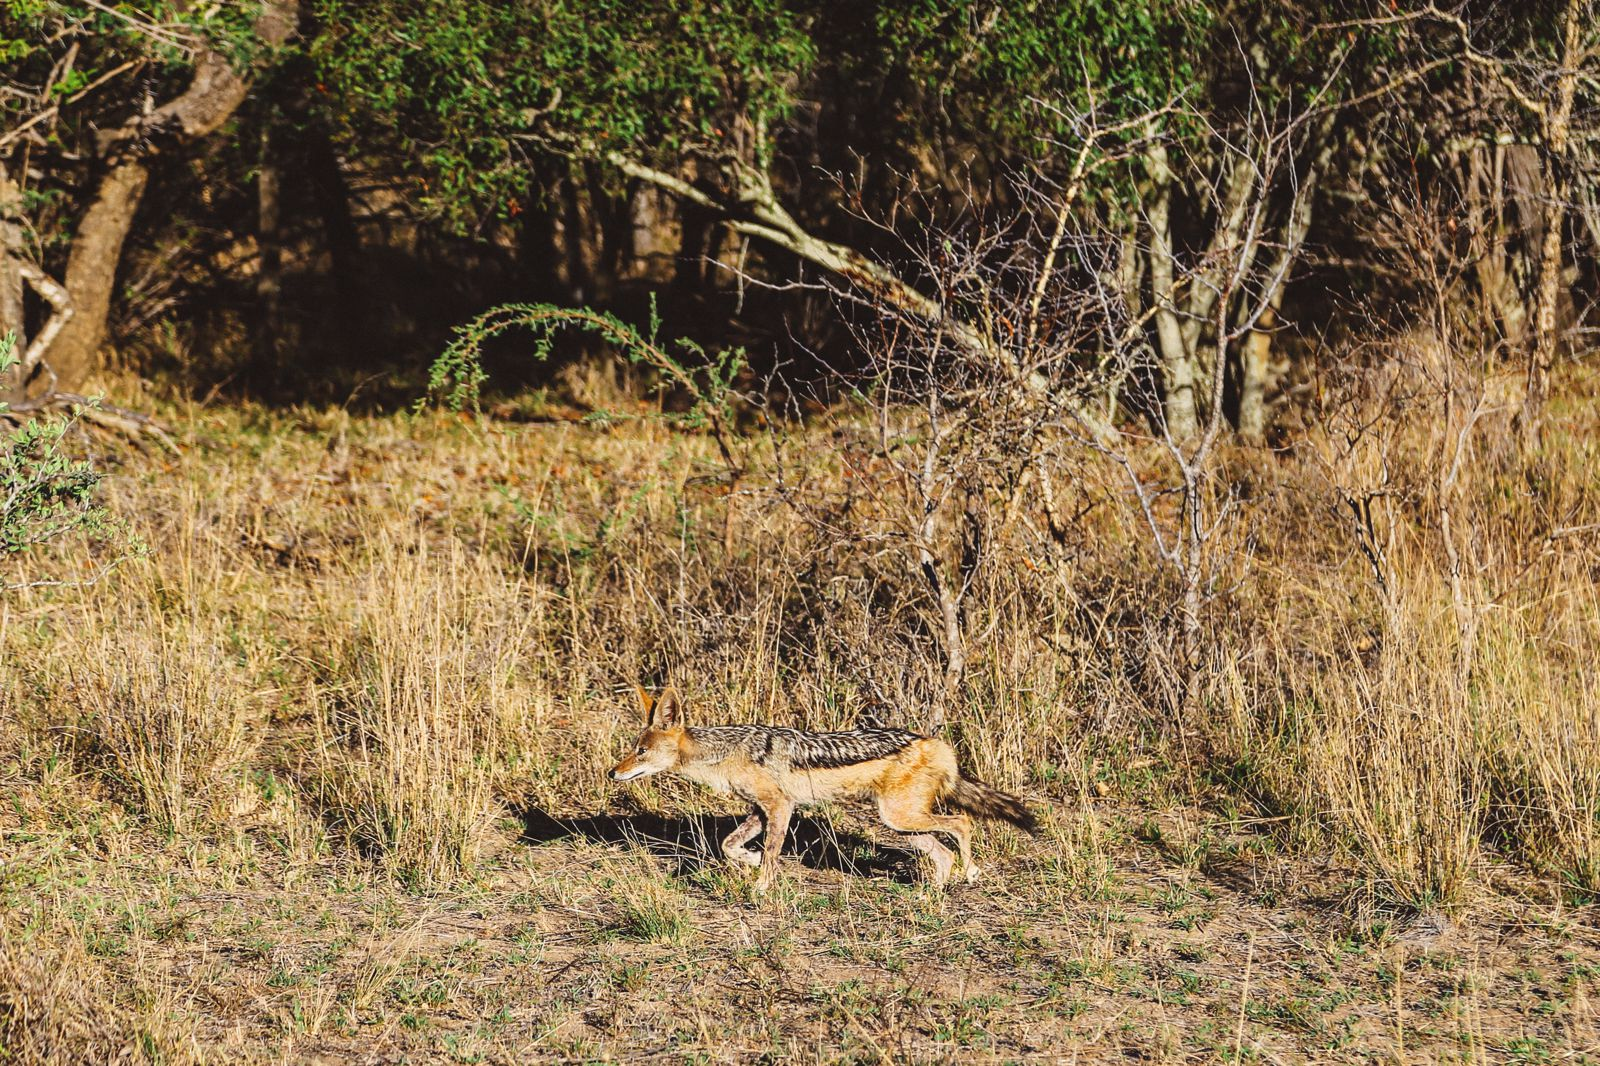 Sunrise Till Sunset - A 24 Hour South African Safari Diary (40)